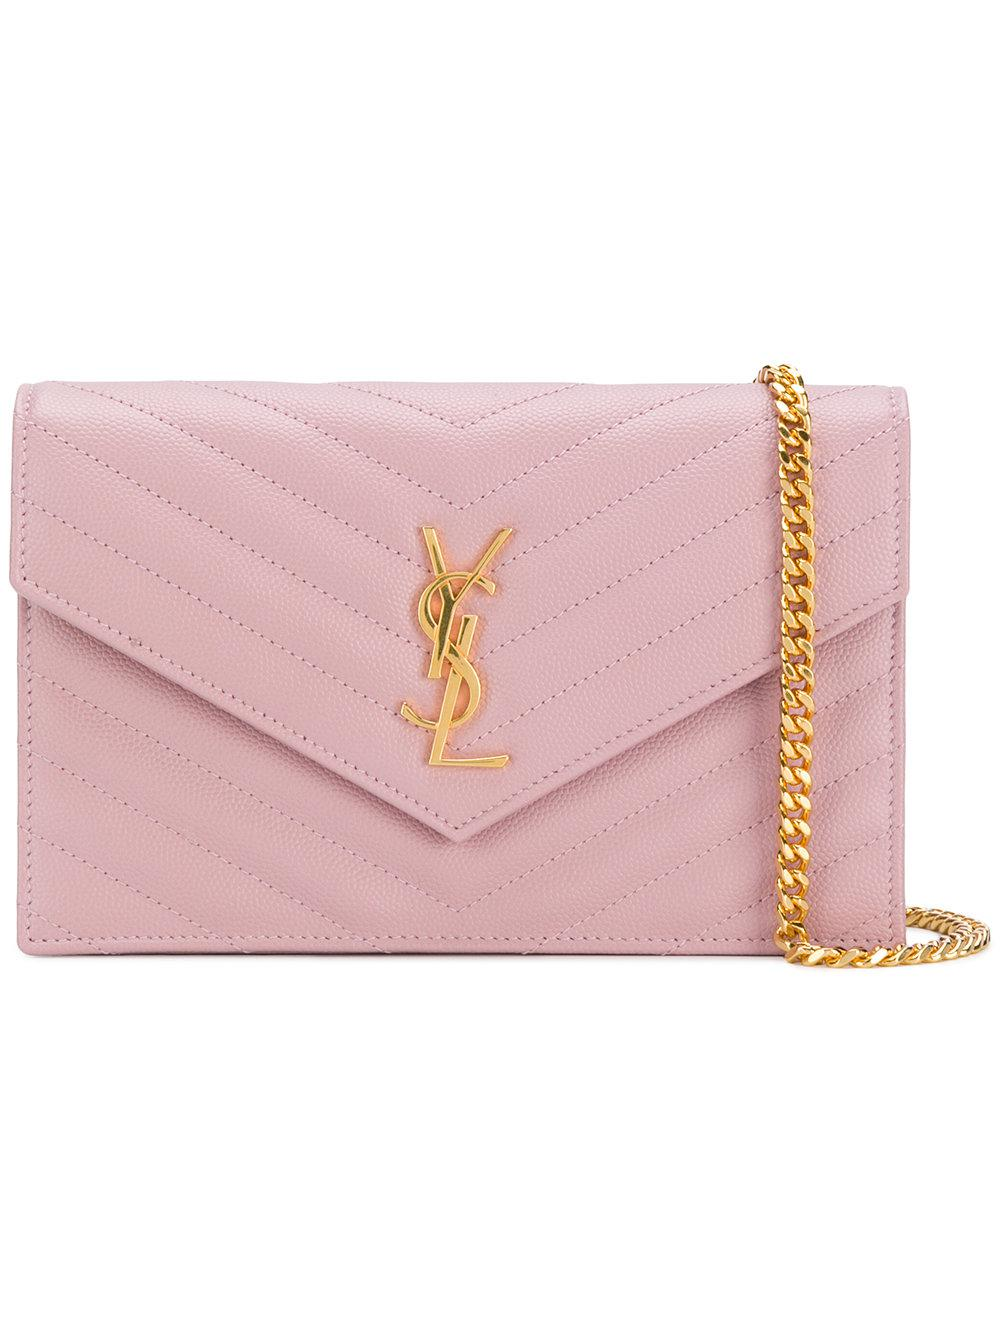 06a8b743c76 Saint Laurent Monogram Envelope Leather Wallet On Chain in Pink - Lyst